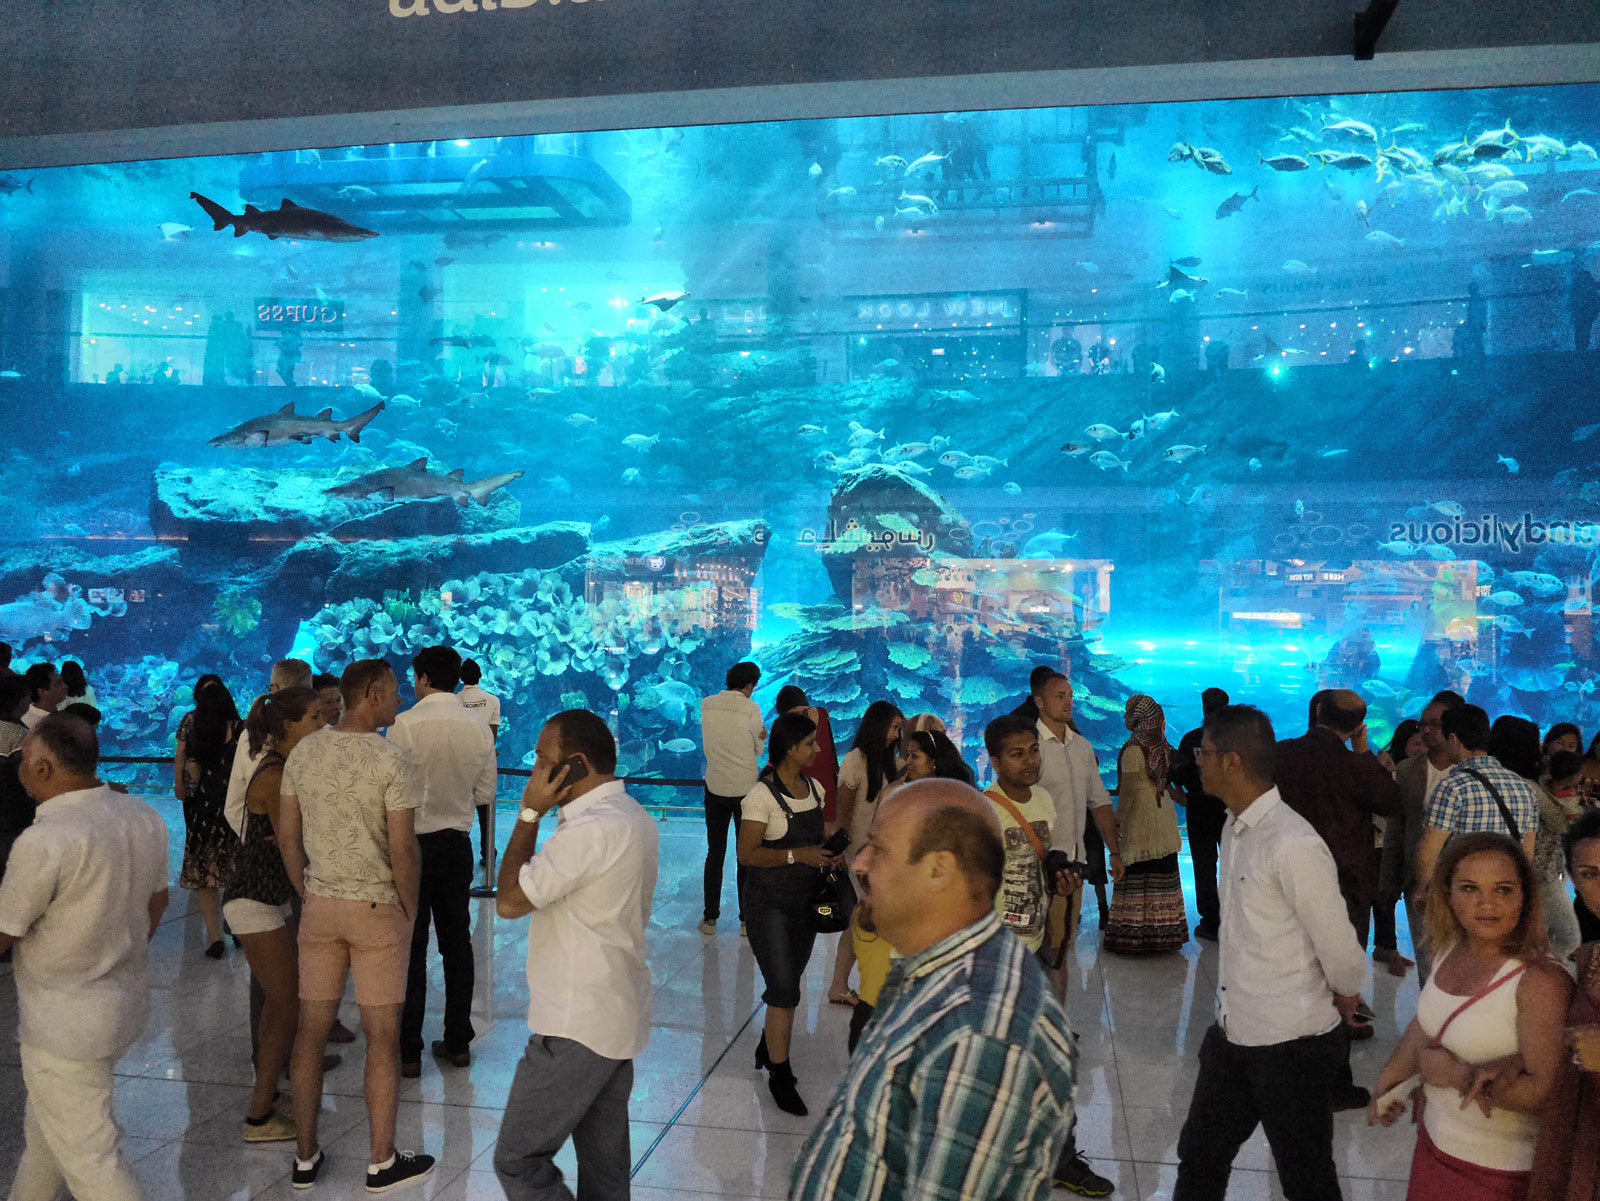 Strolling Past the Aquarium Inside Dubai Mall - Dubai, United Arab Emirates